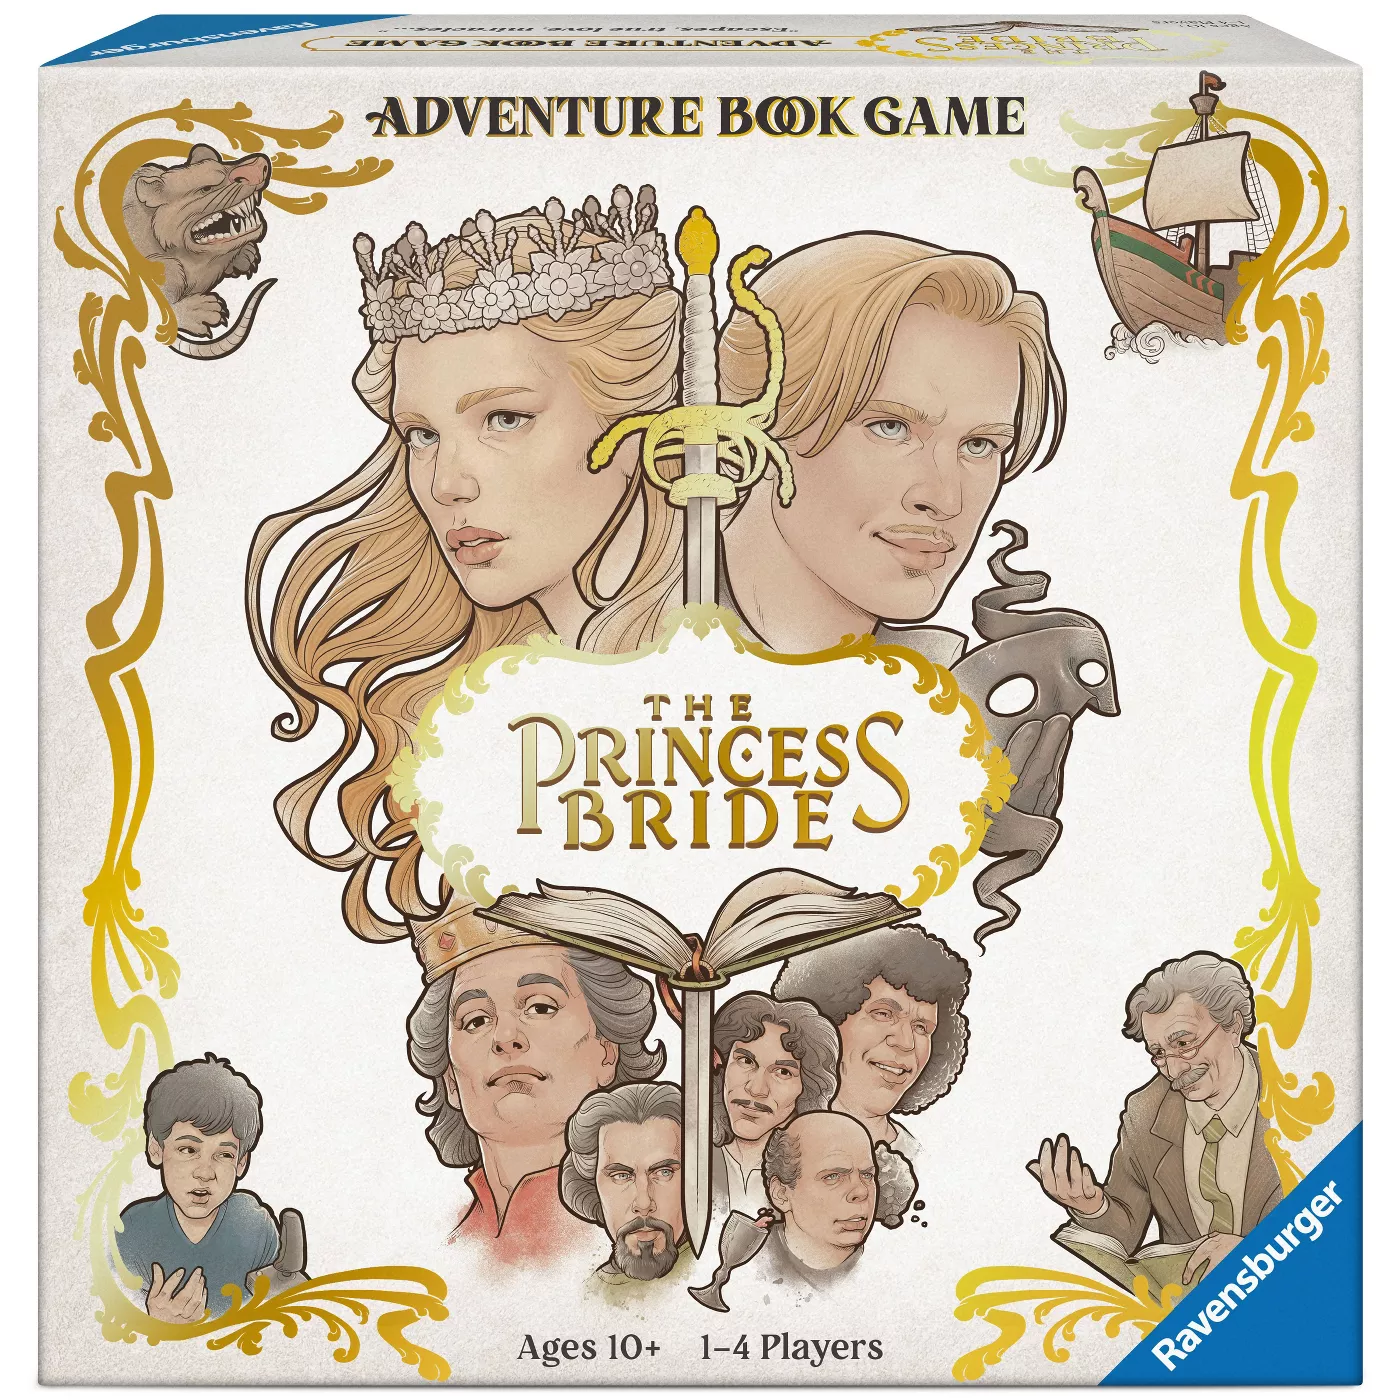 The Princess Bride Adventure Book Game box showing cover art